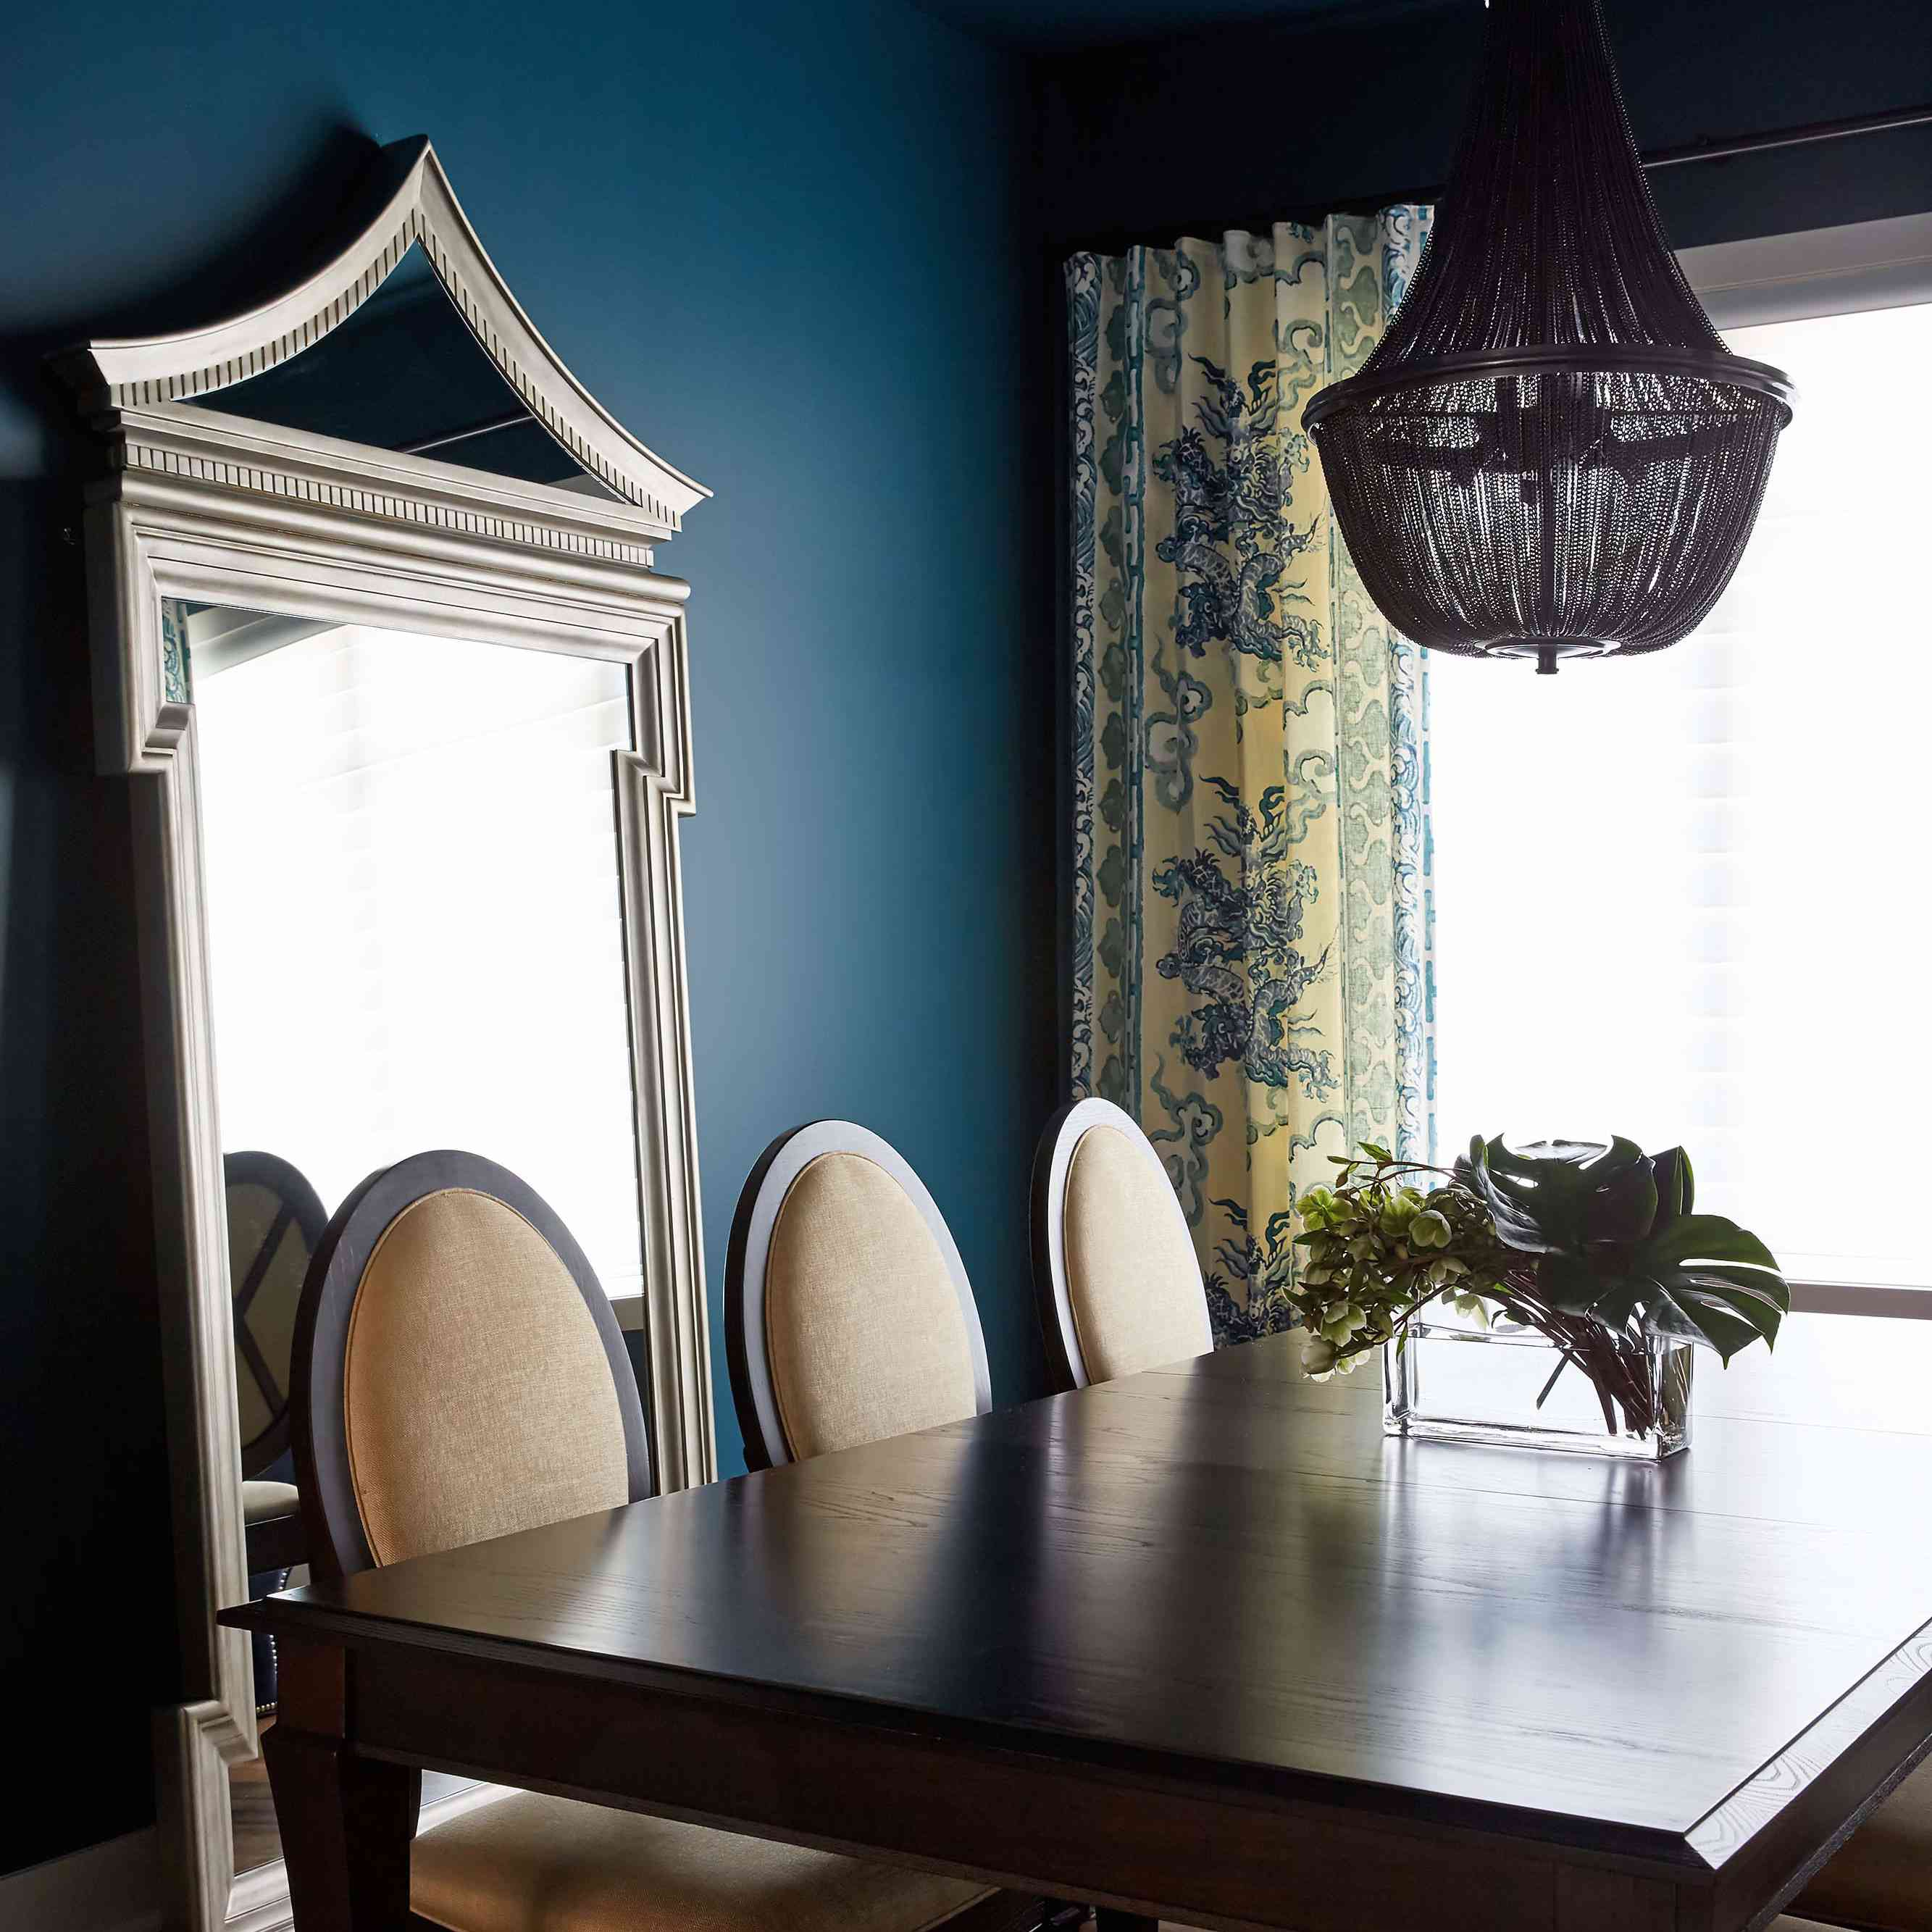 A dining room with navy walls, a navy ceiling, and printed beige and navy curtains